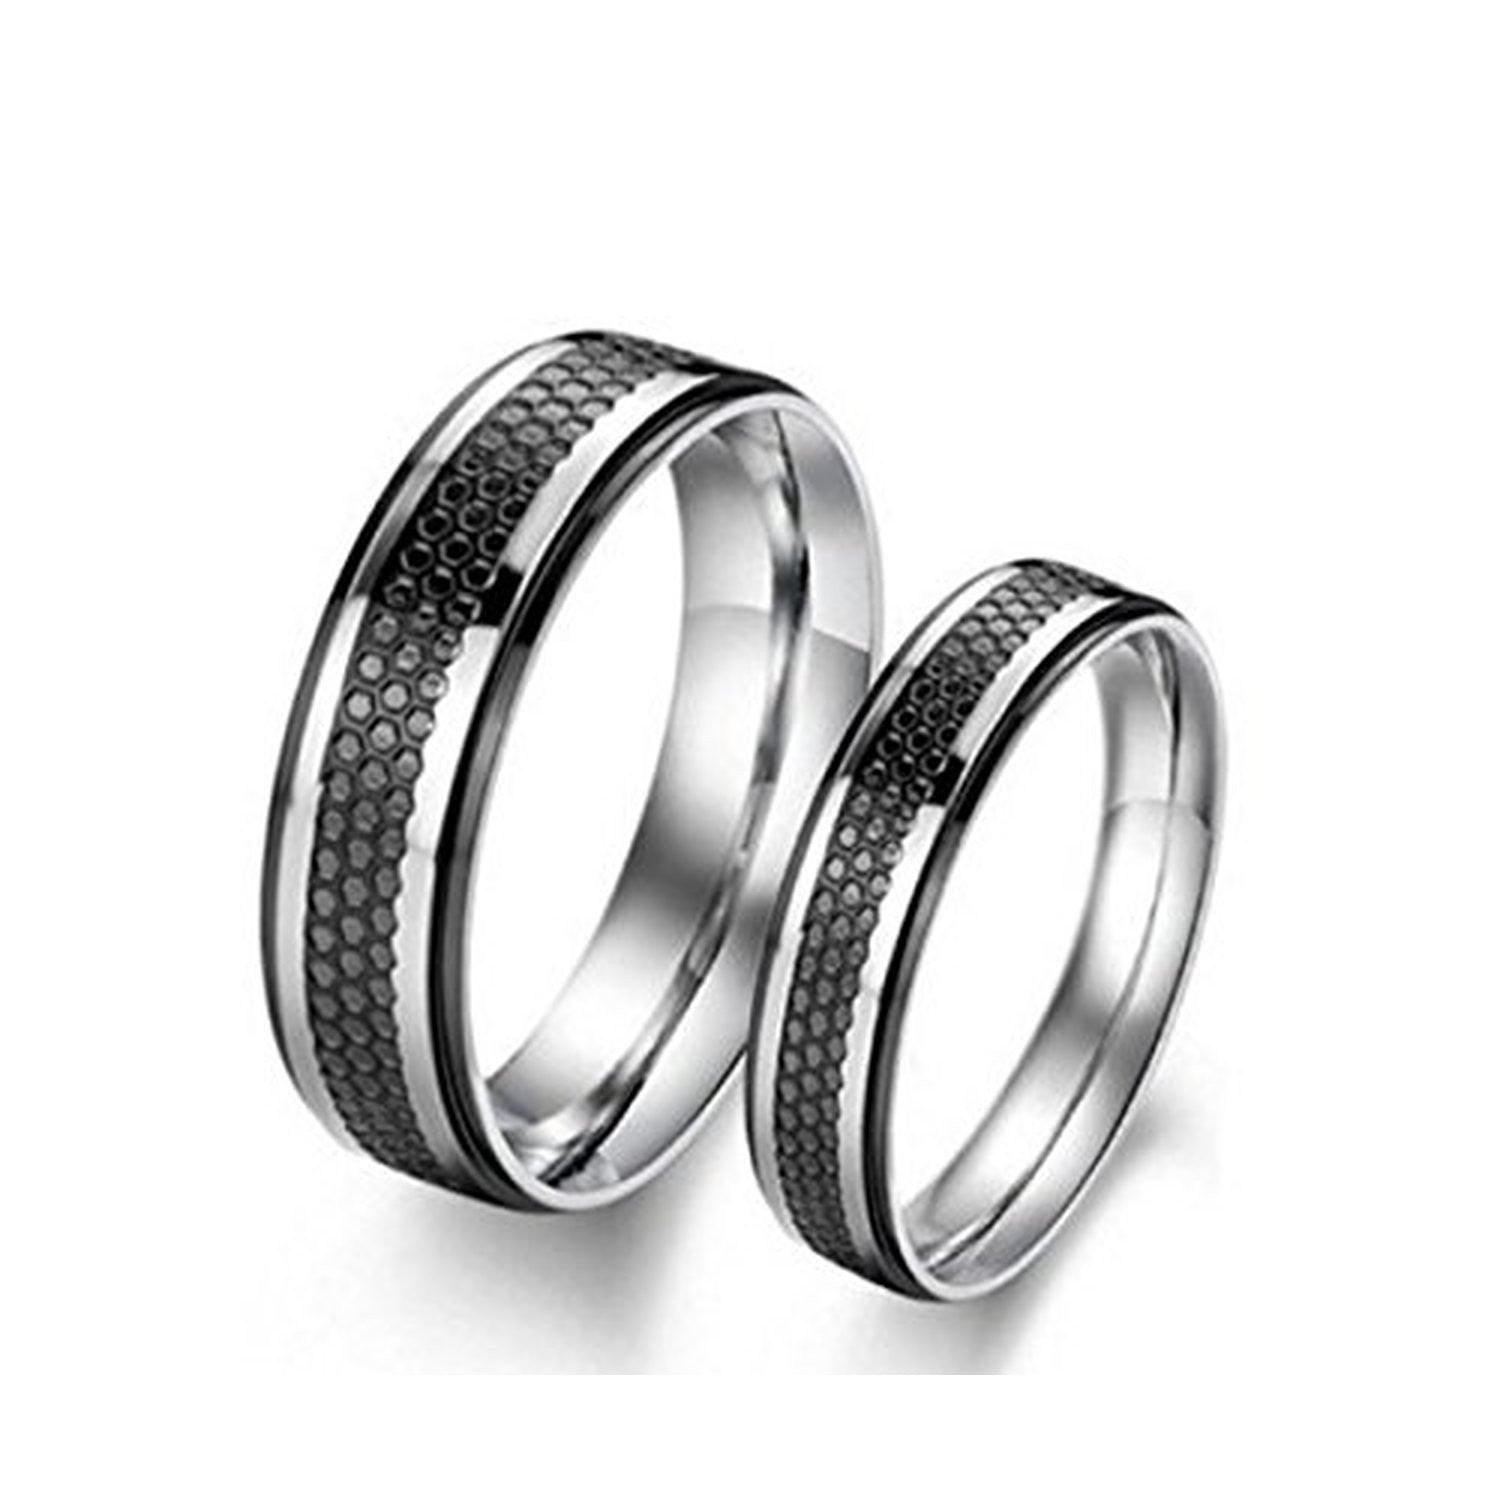 sand wood mens il s gun blasted black ring fullxfull by rings p men band grey pristine titanium metal wedding iron dessert